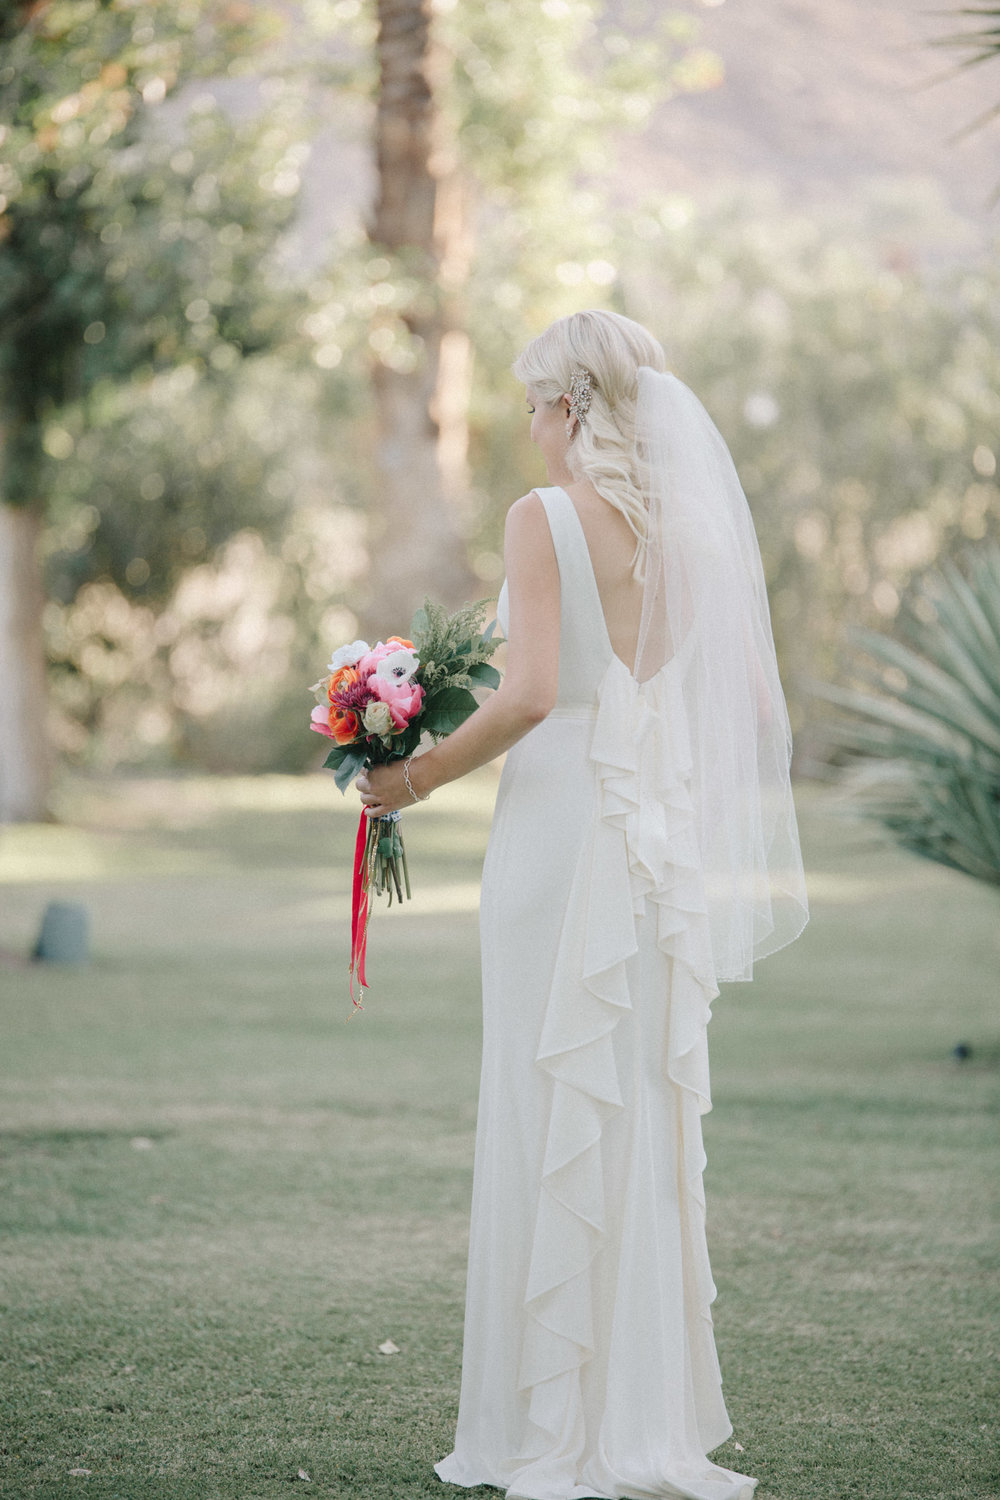 Palm_Springs_CA_wedding_alex_maxwell-45.jpg